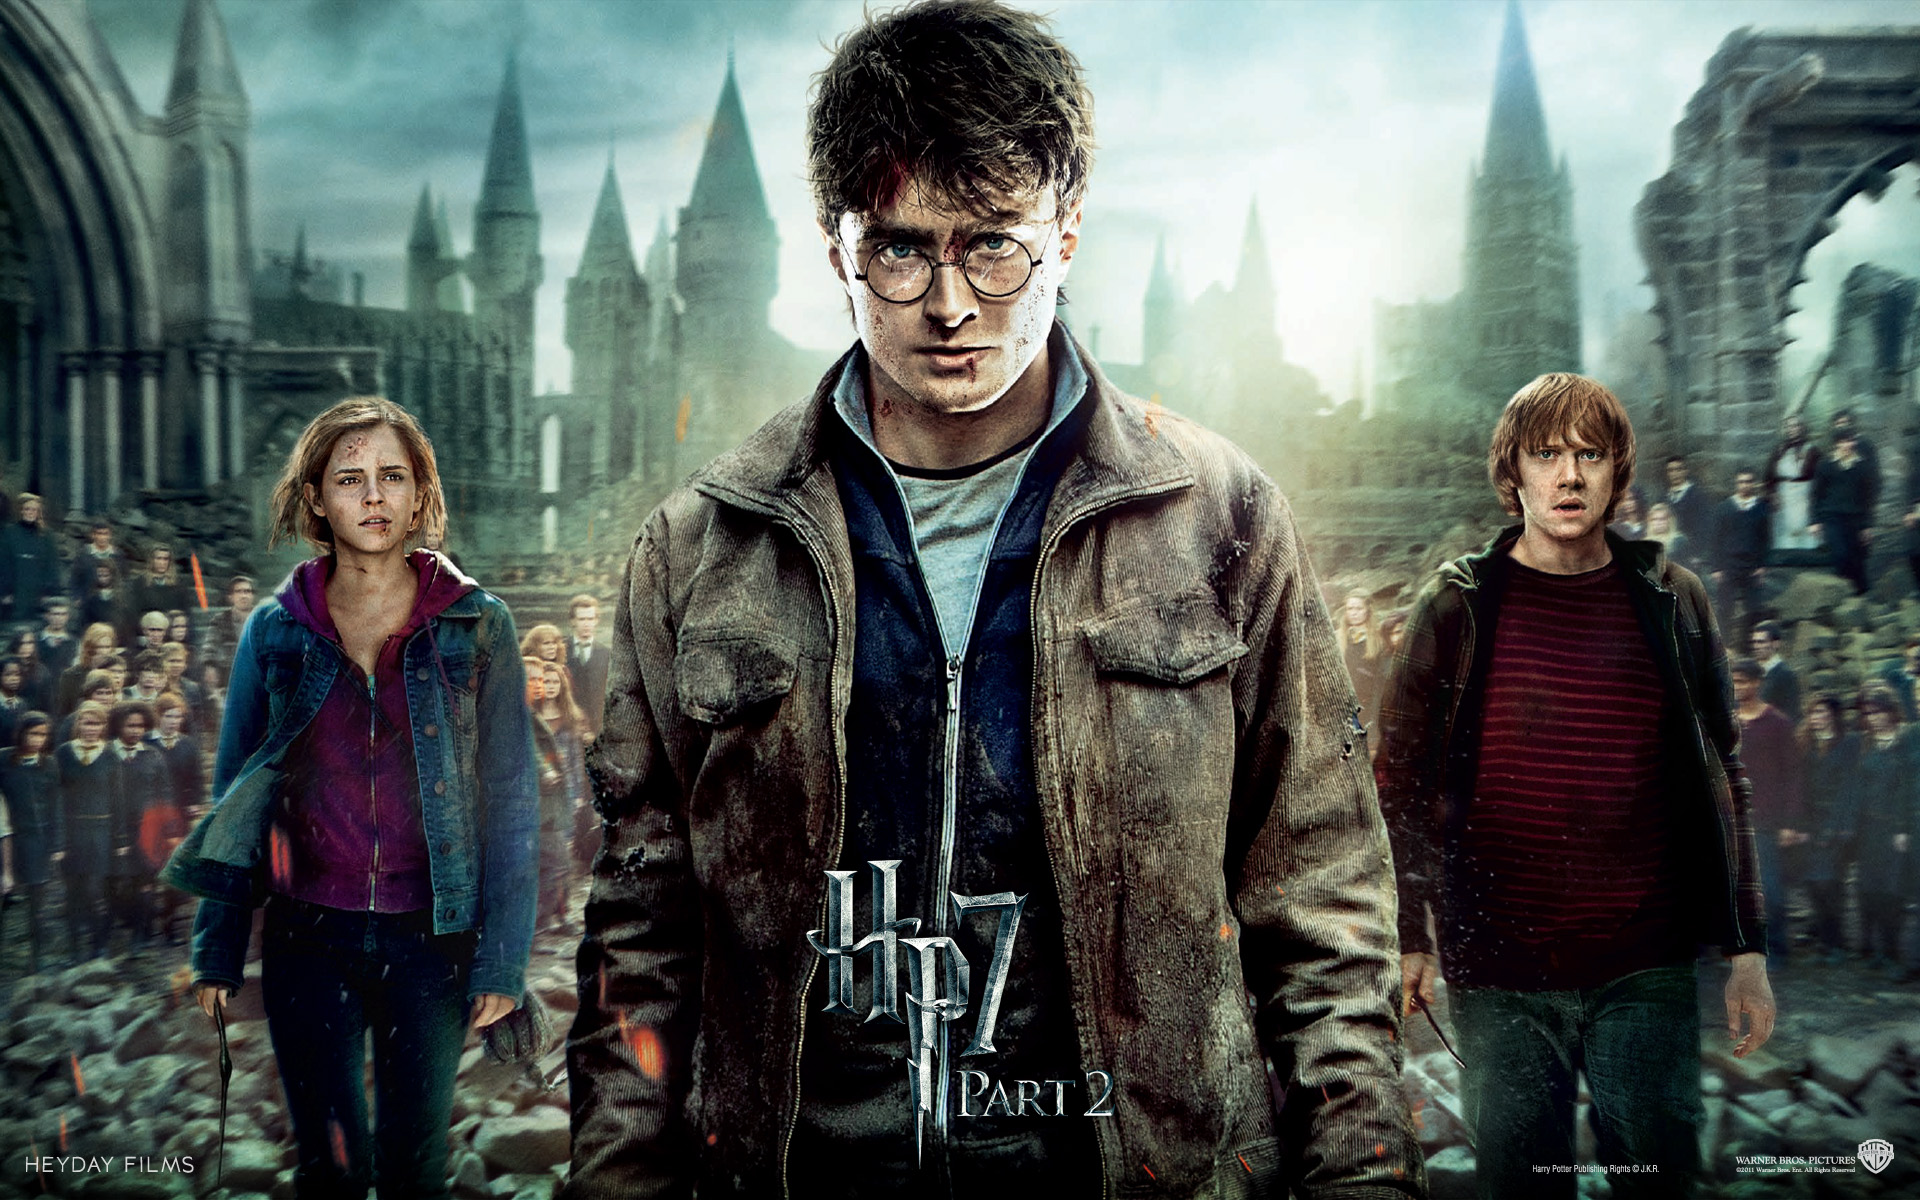 Must see Wallpaper Harry Potter Friend - harry-potter-and-the-deathly-hallows-part-2-wallpaper  Graphic_194788.jpg